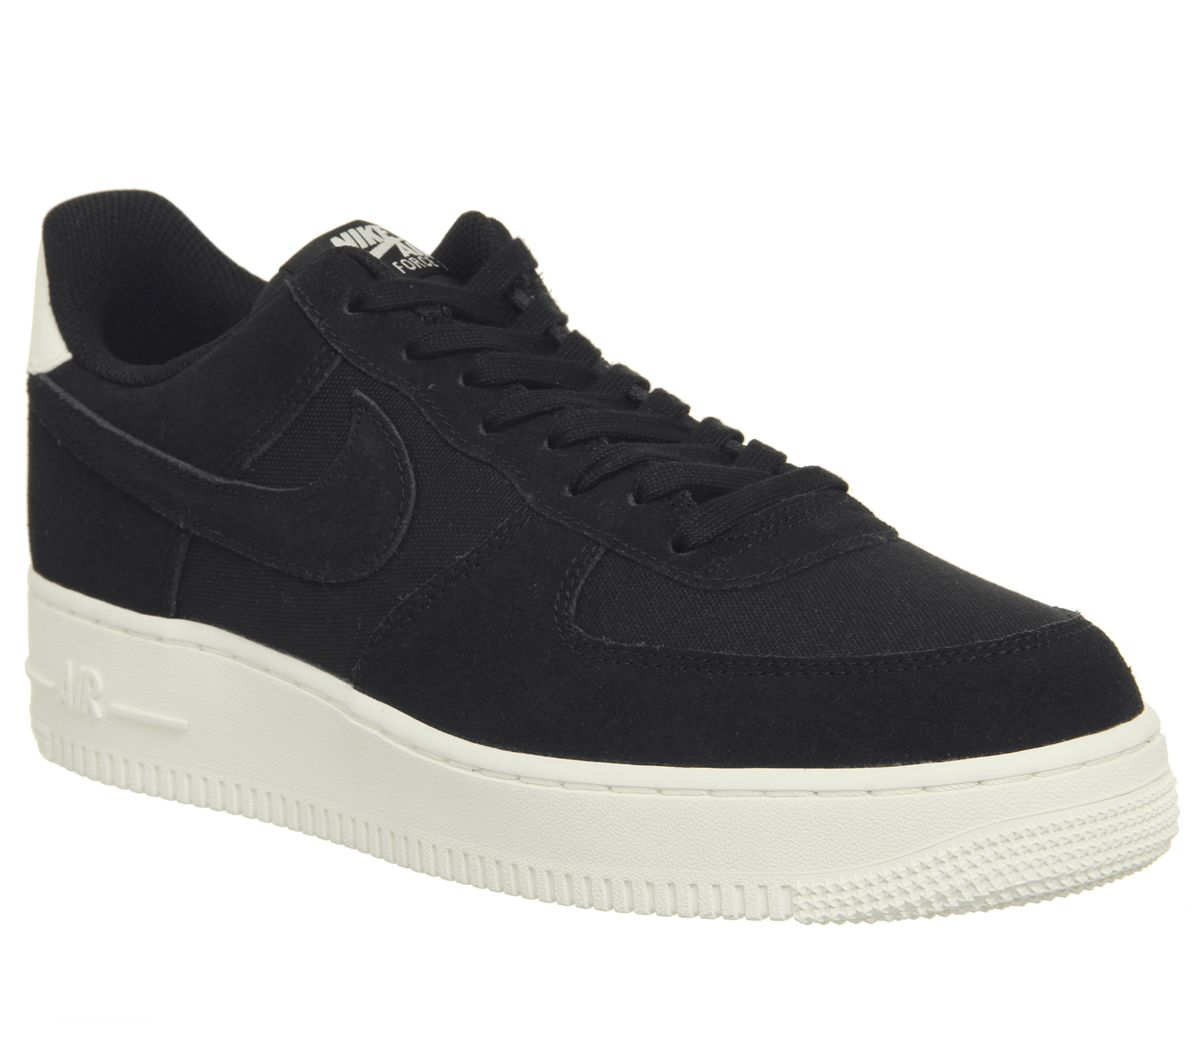 low priced 0710d c7592 Nike Air Force 1 07 Trainers Black Sail - His trainers